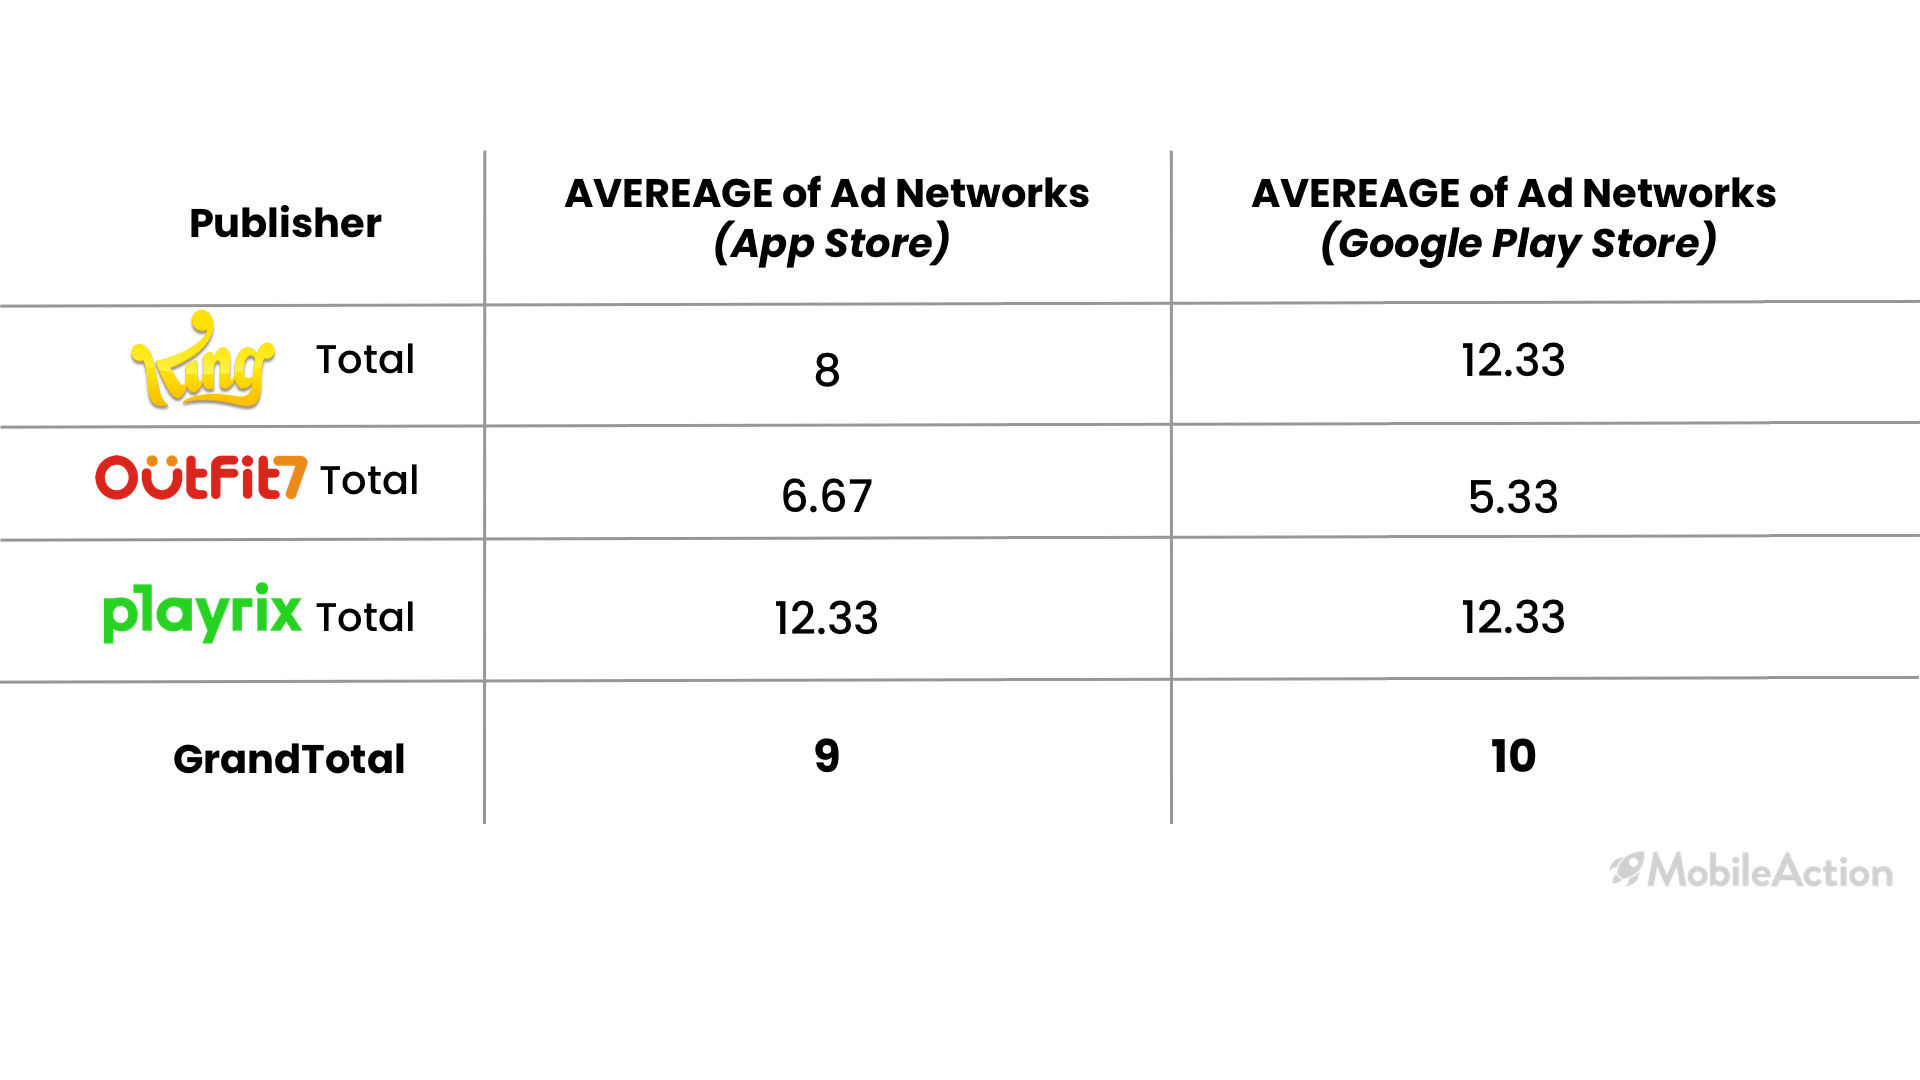 ad networks averages